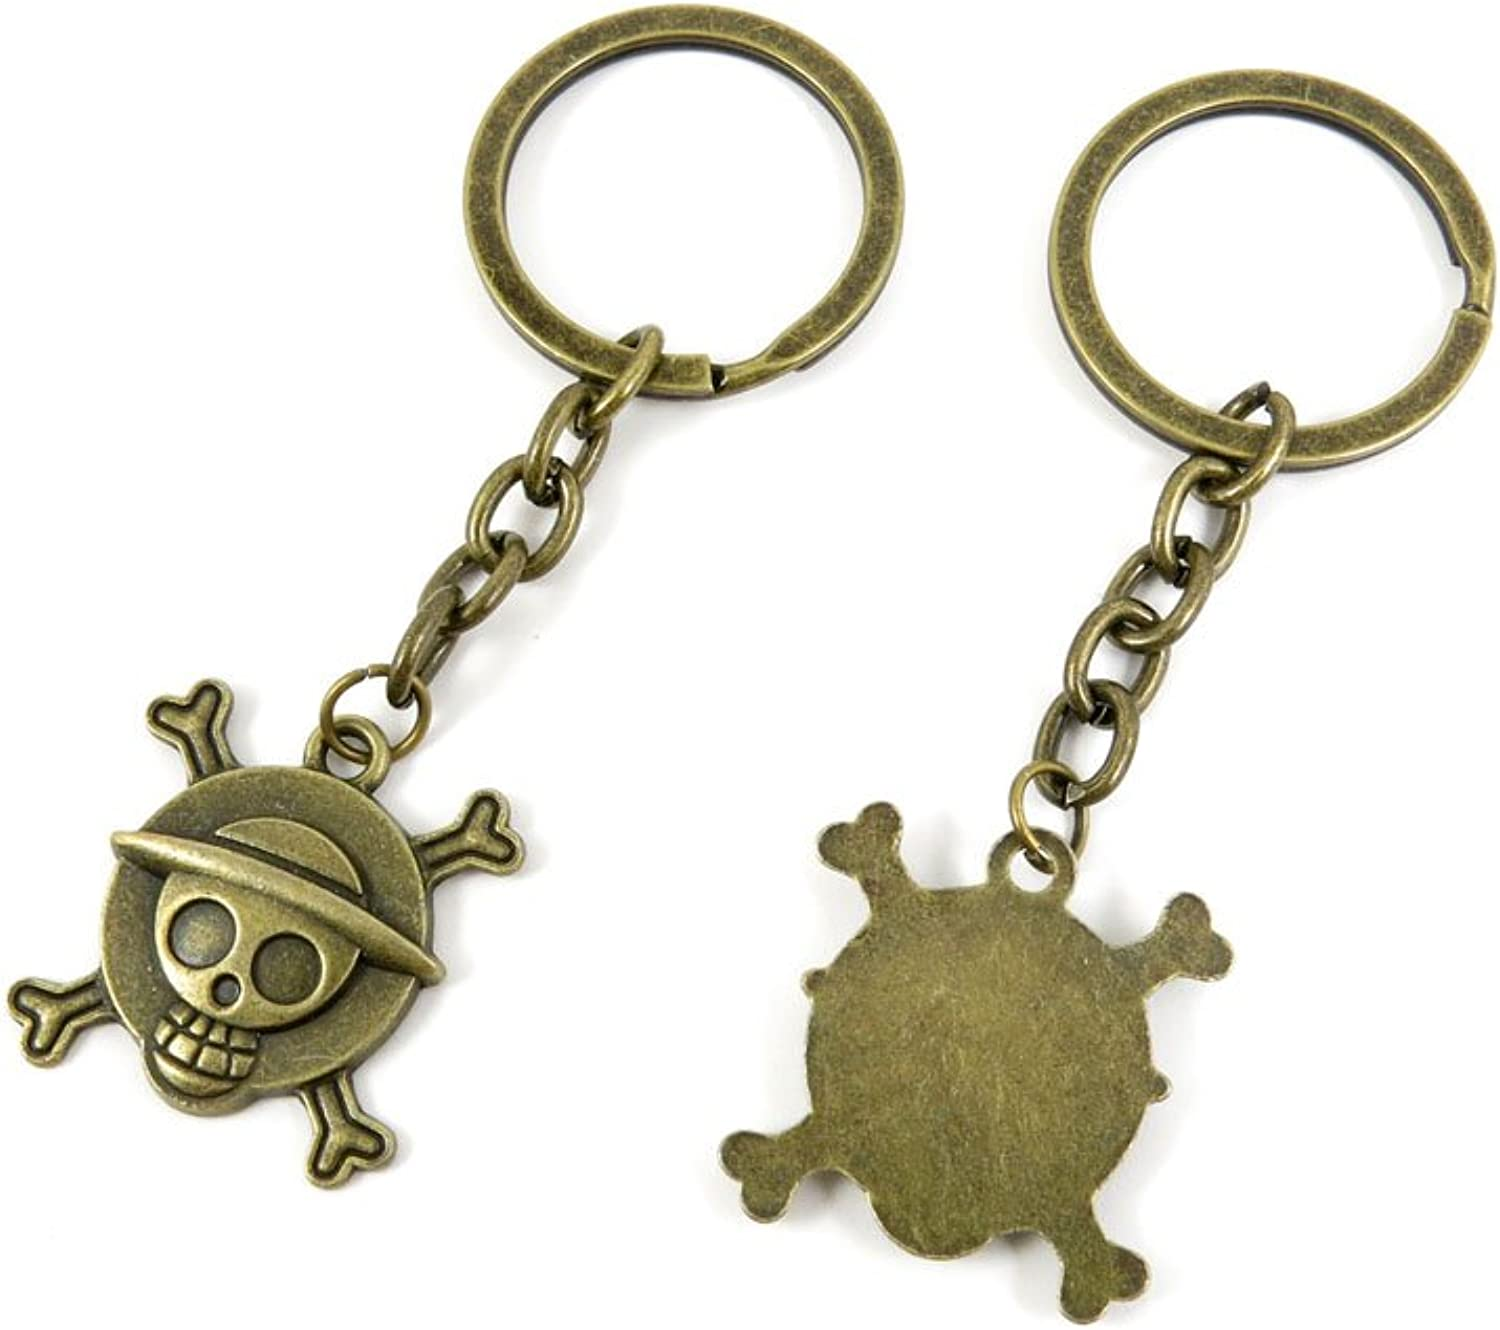 100 PCS Keyrings Keychains Key Ring Chains Tags Jewelry Findings Clasps Buckles Supplies C3NT5 Pirate Skull